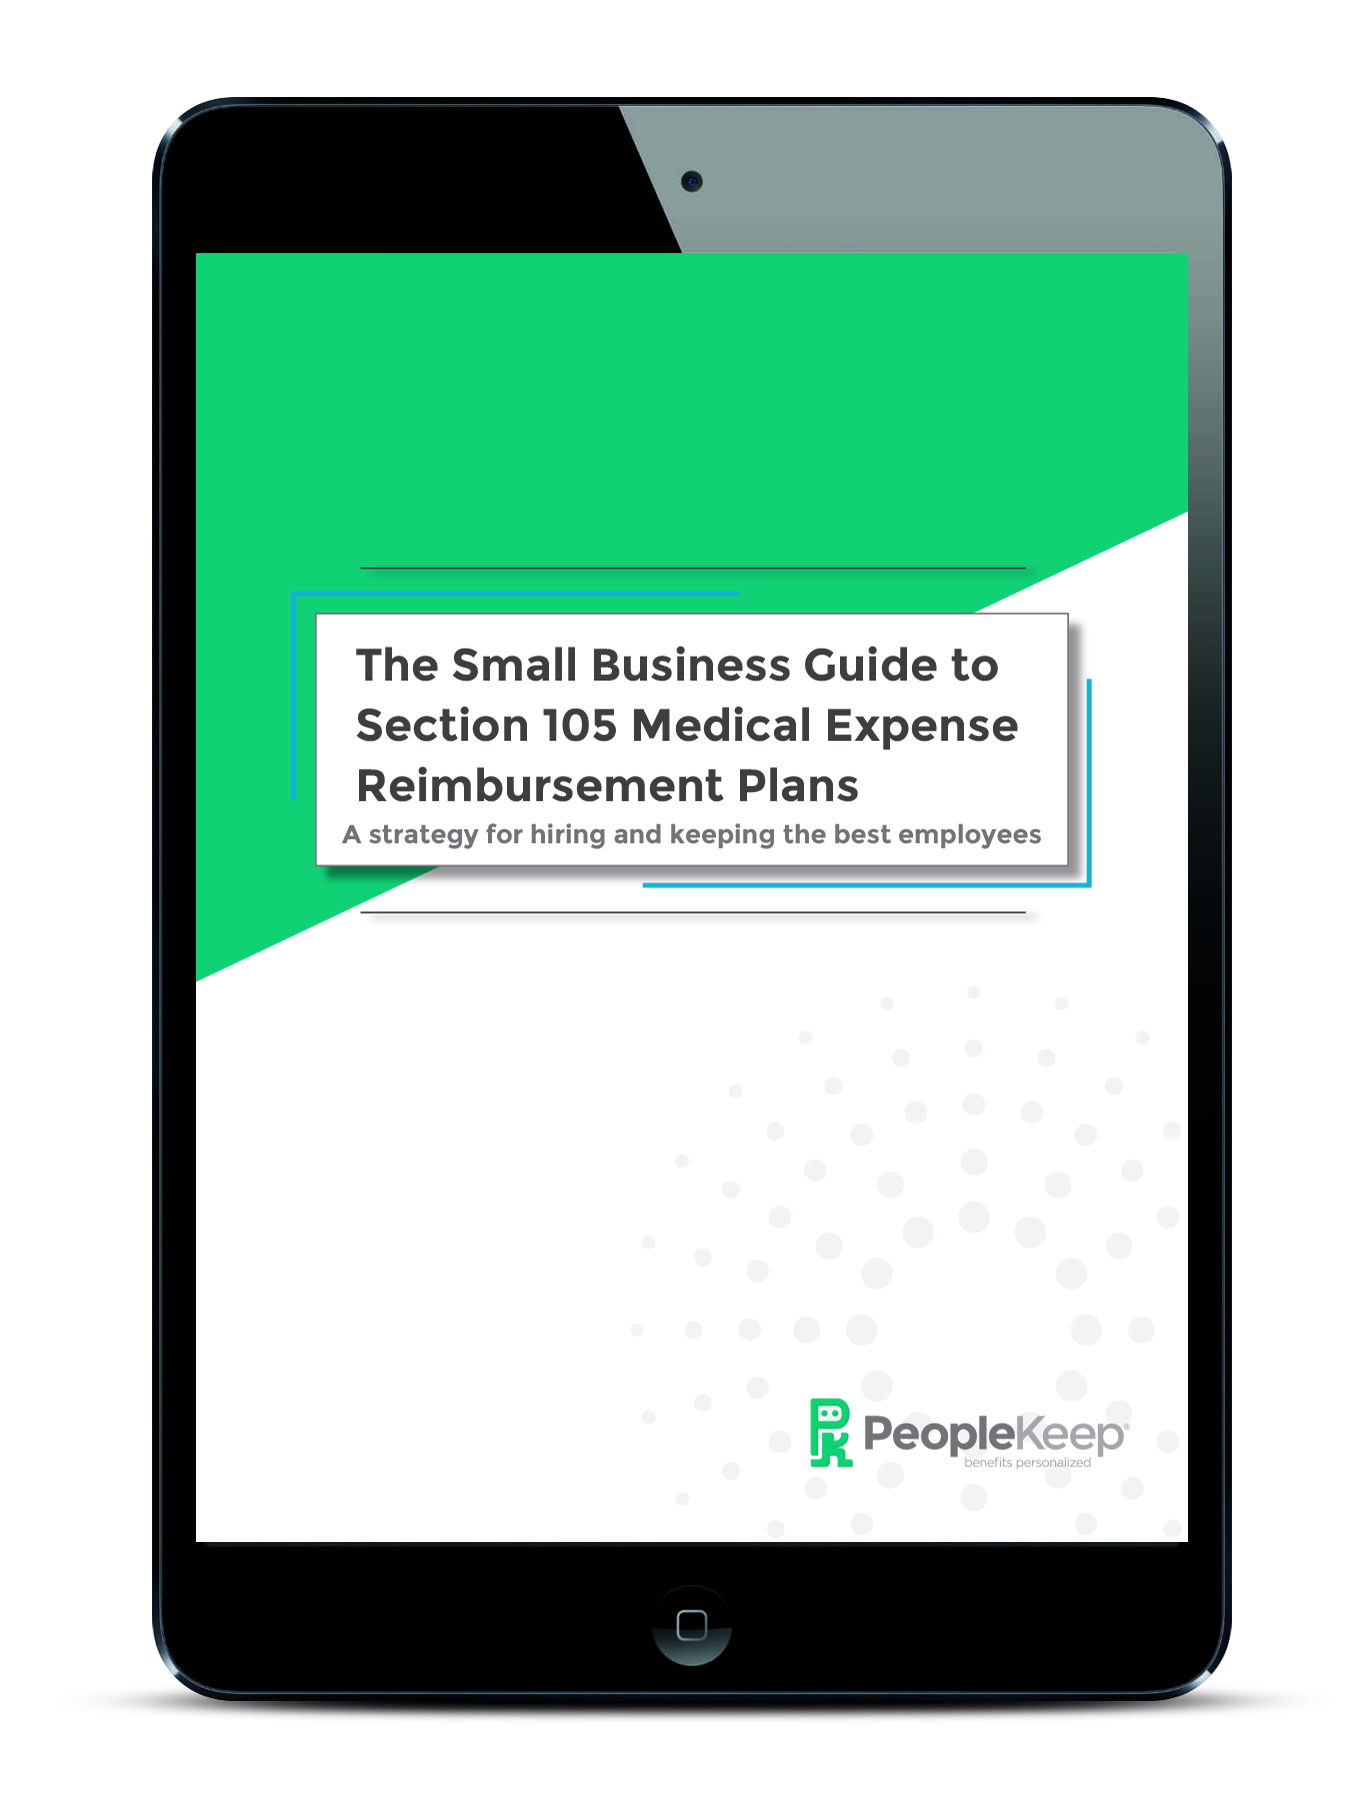 The Small Business Guide to Section 105 Medical Expense Reimbursement Plans